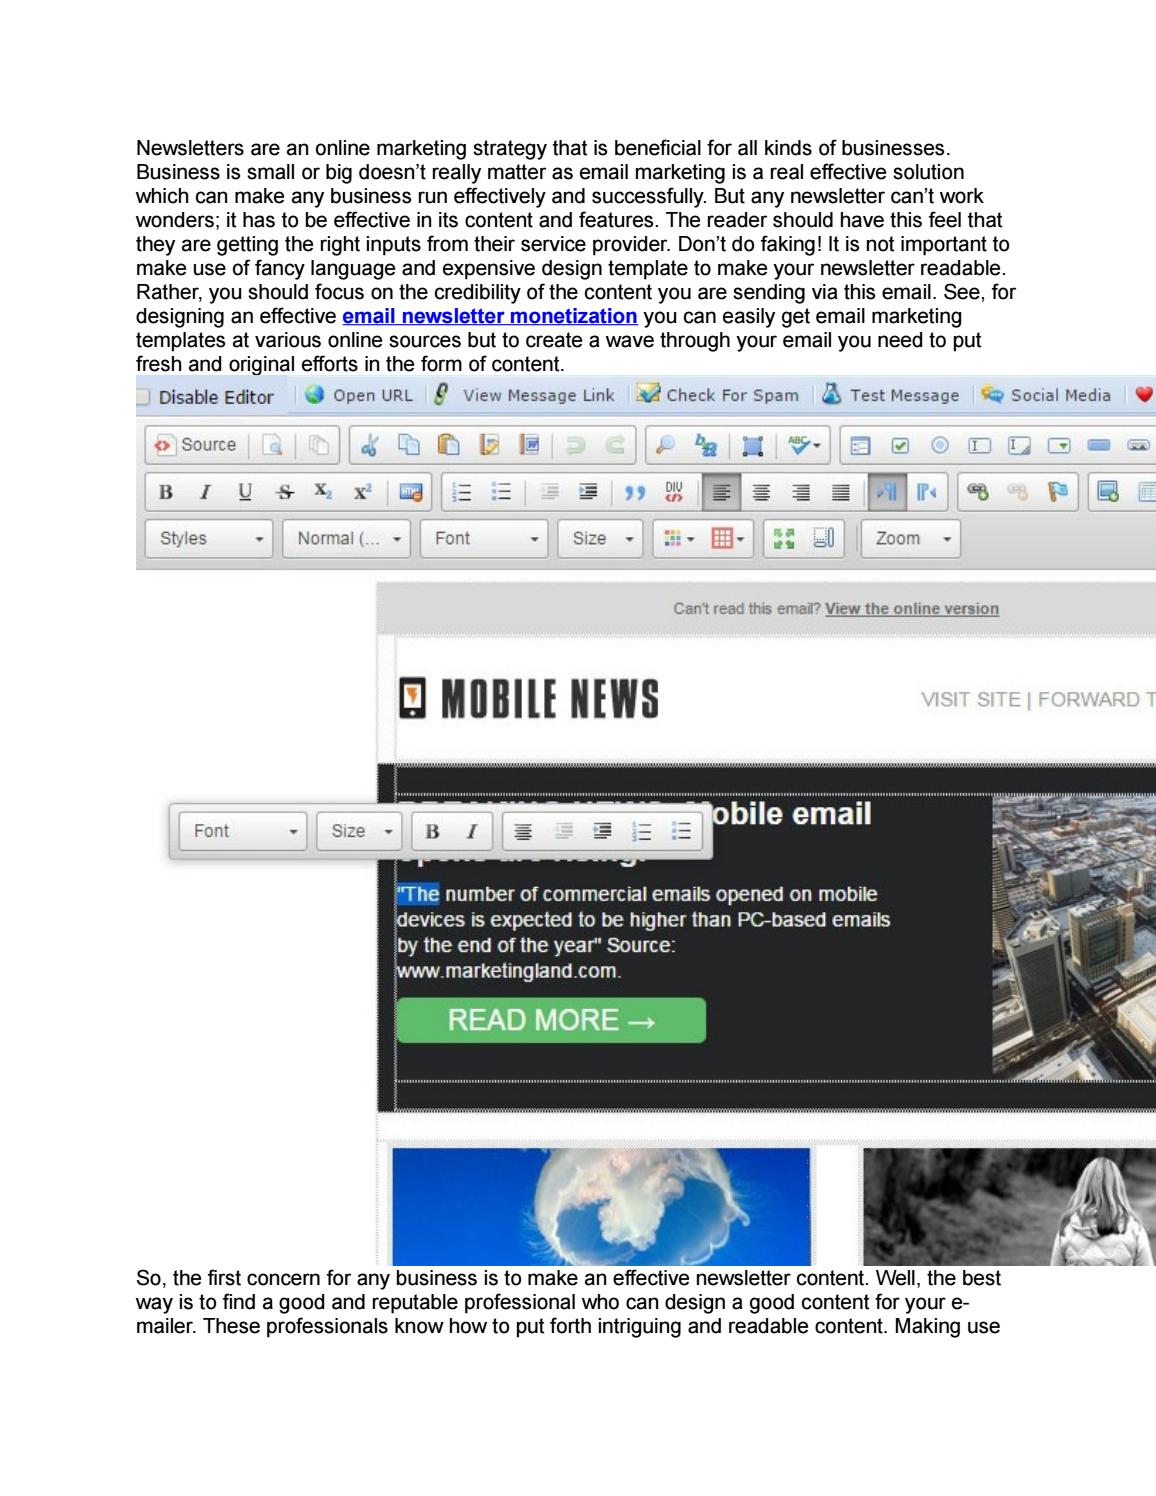 Email newsletter templates are an effective way to monetize the ...